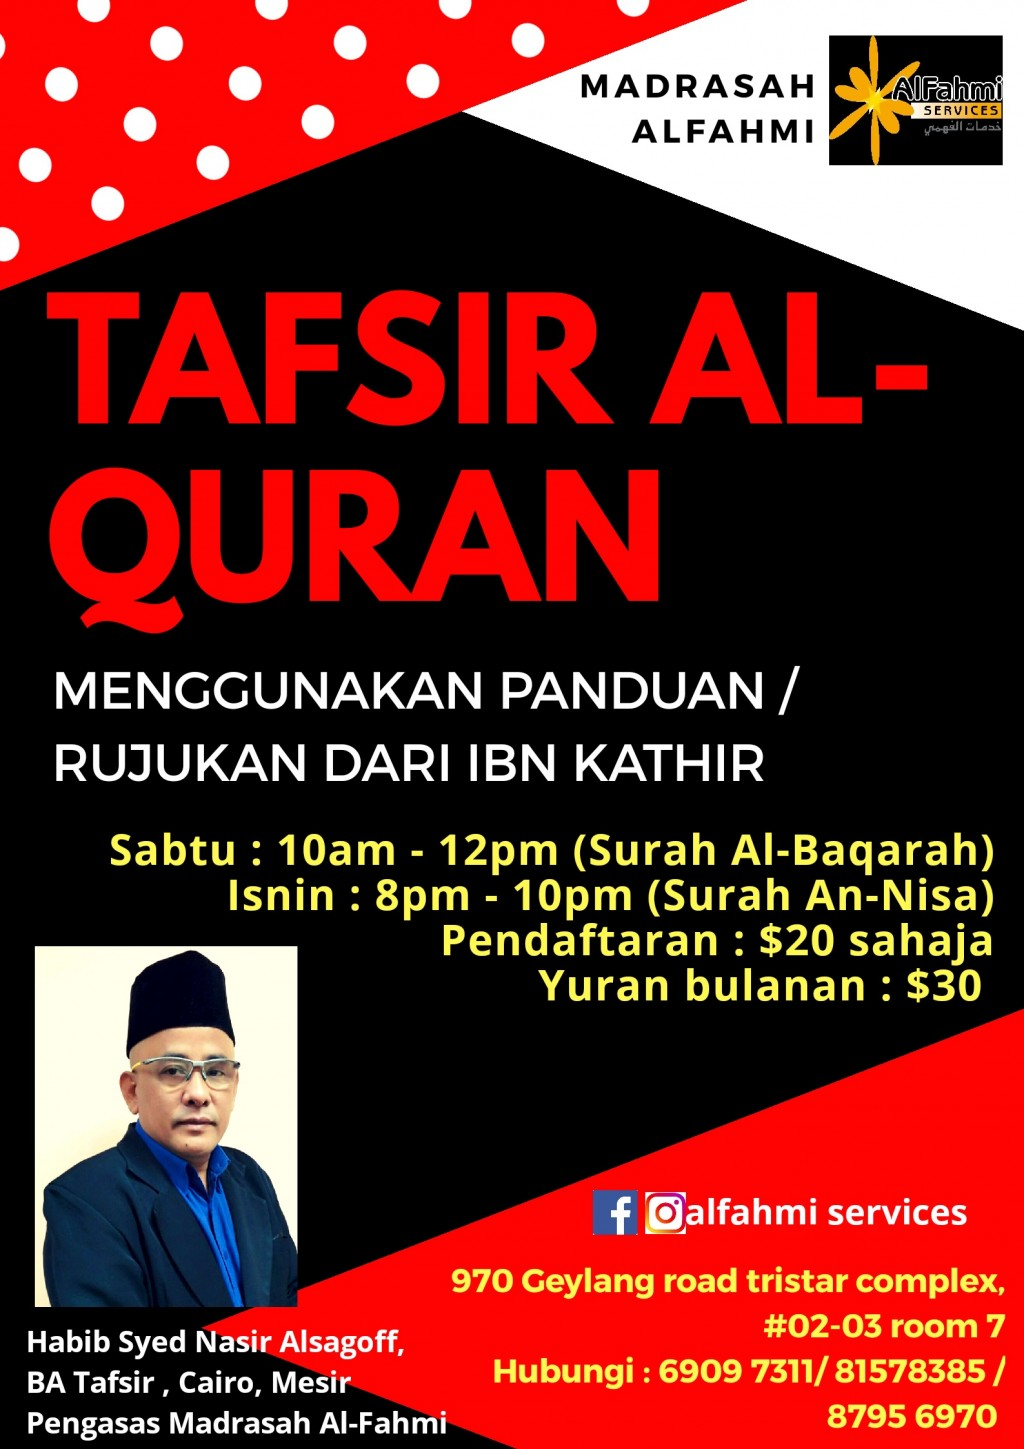 TAFSIR AL-QURAN (ON-GOING)